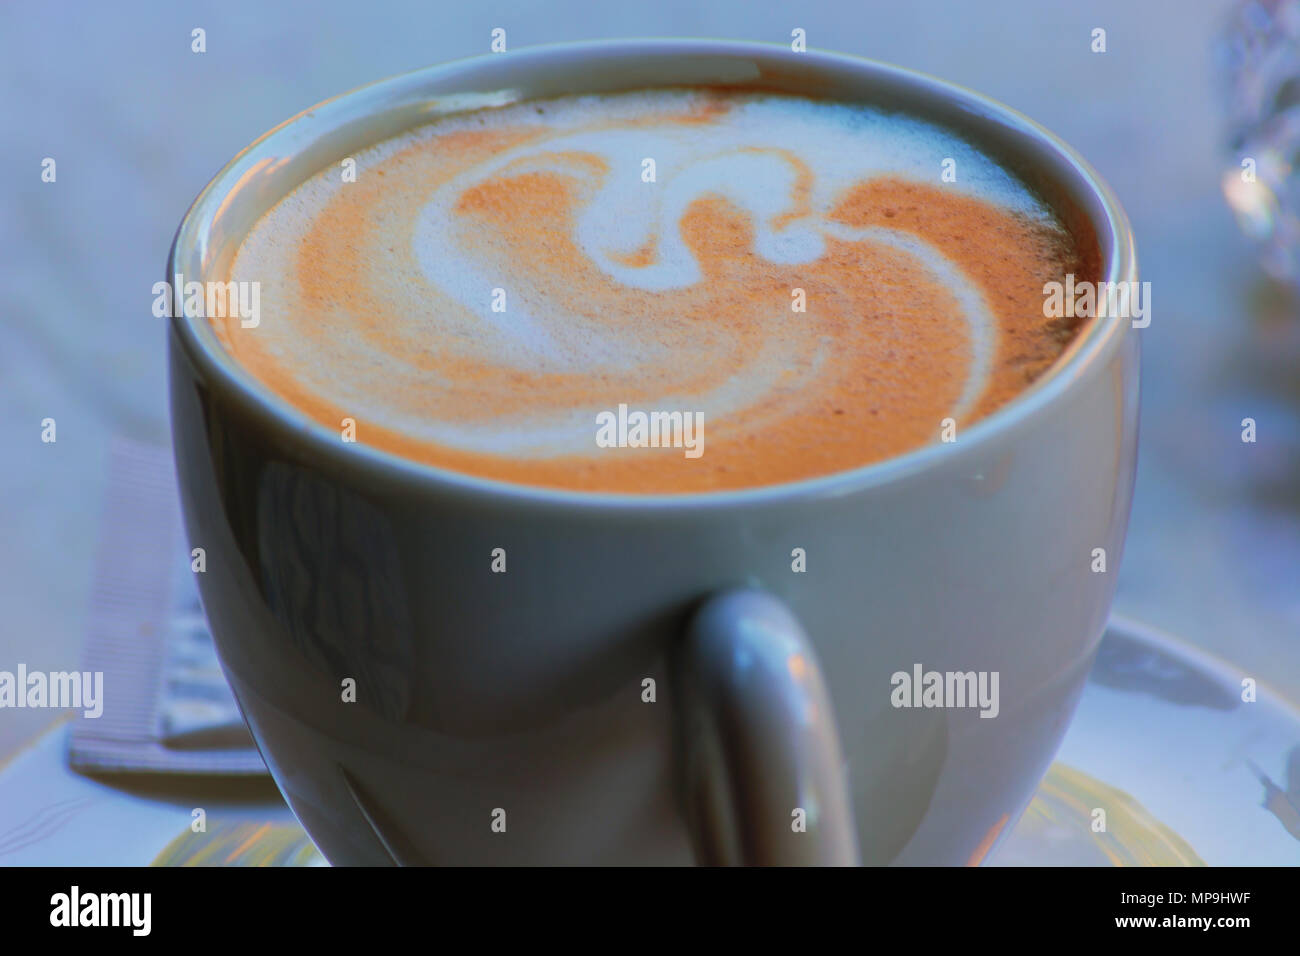 A white cup of coffee latte art before bokeh background - Stock Image